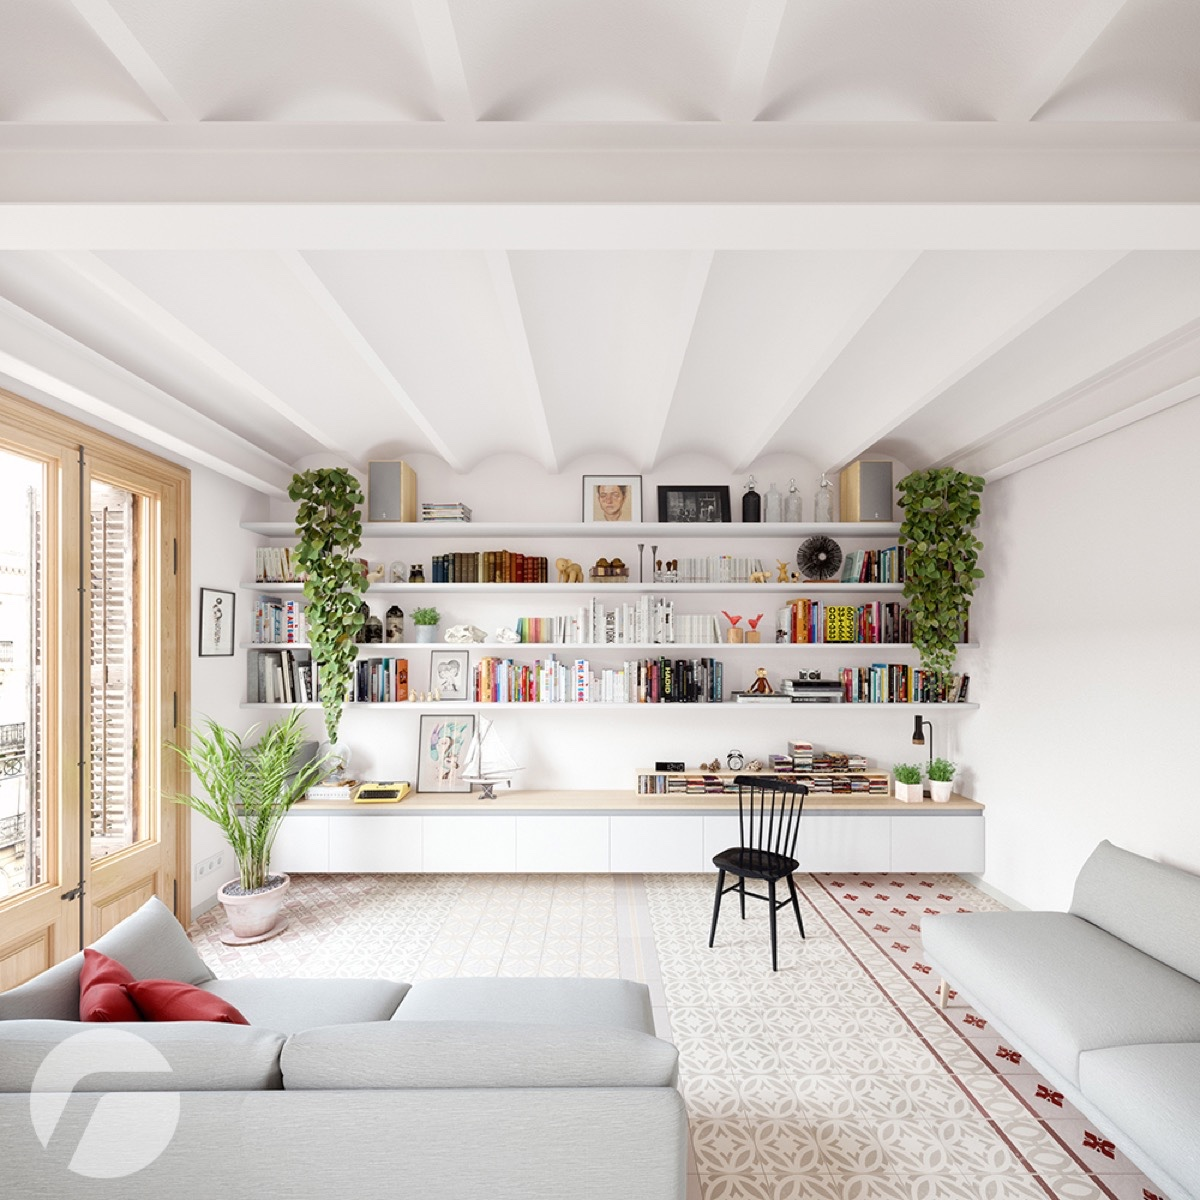 Home Inspiration: 10 Stunning Apartments That Show Off The Beauty Of Nordic